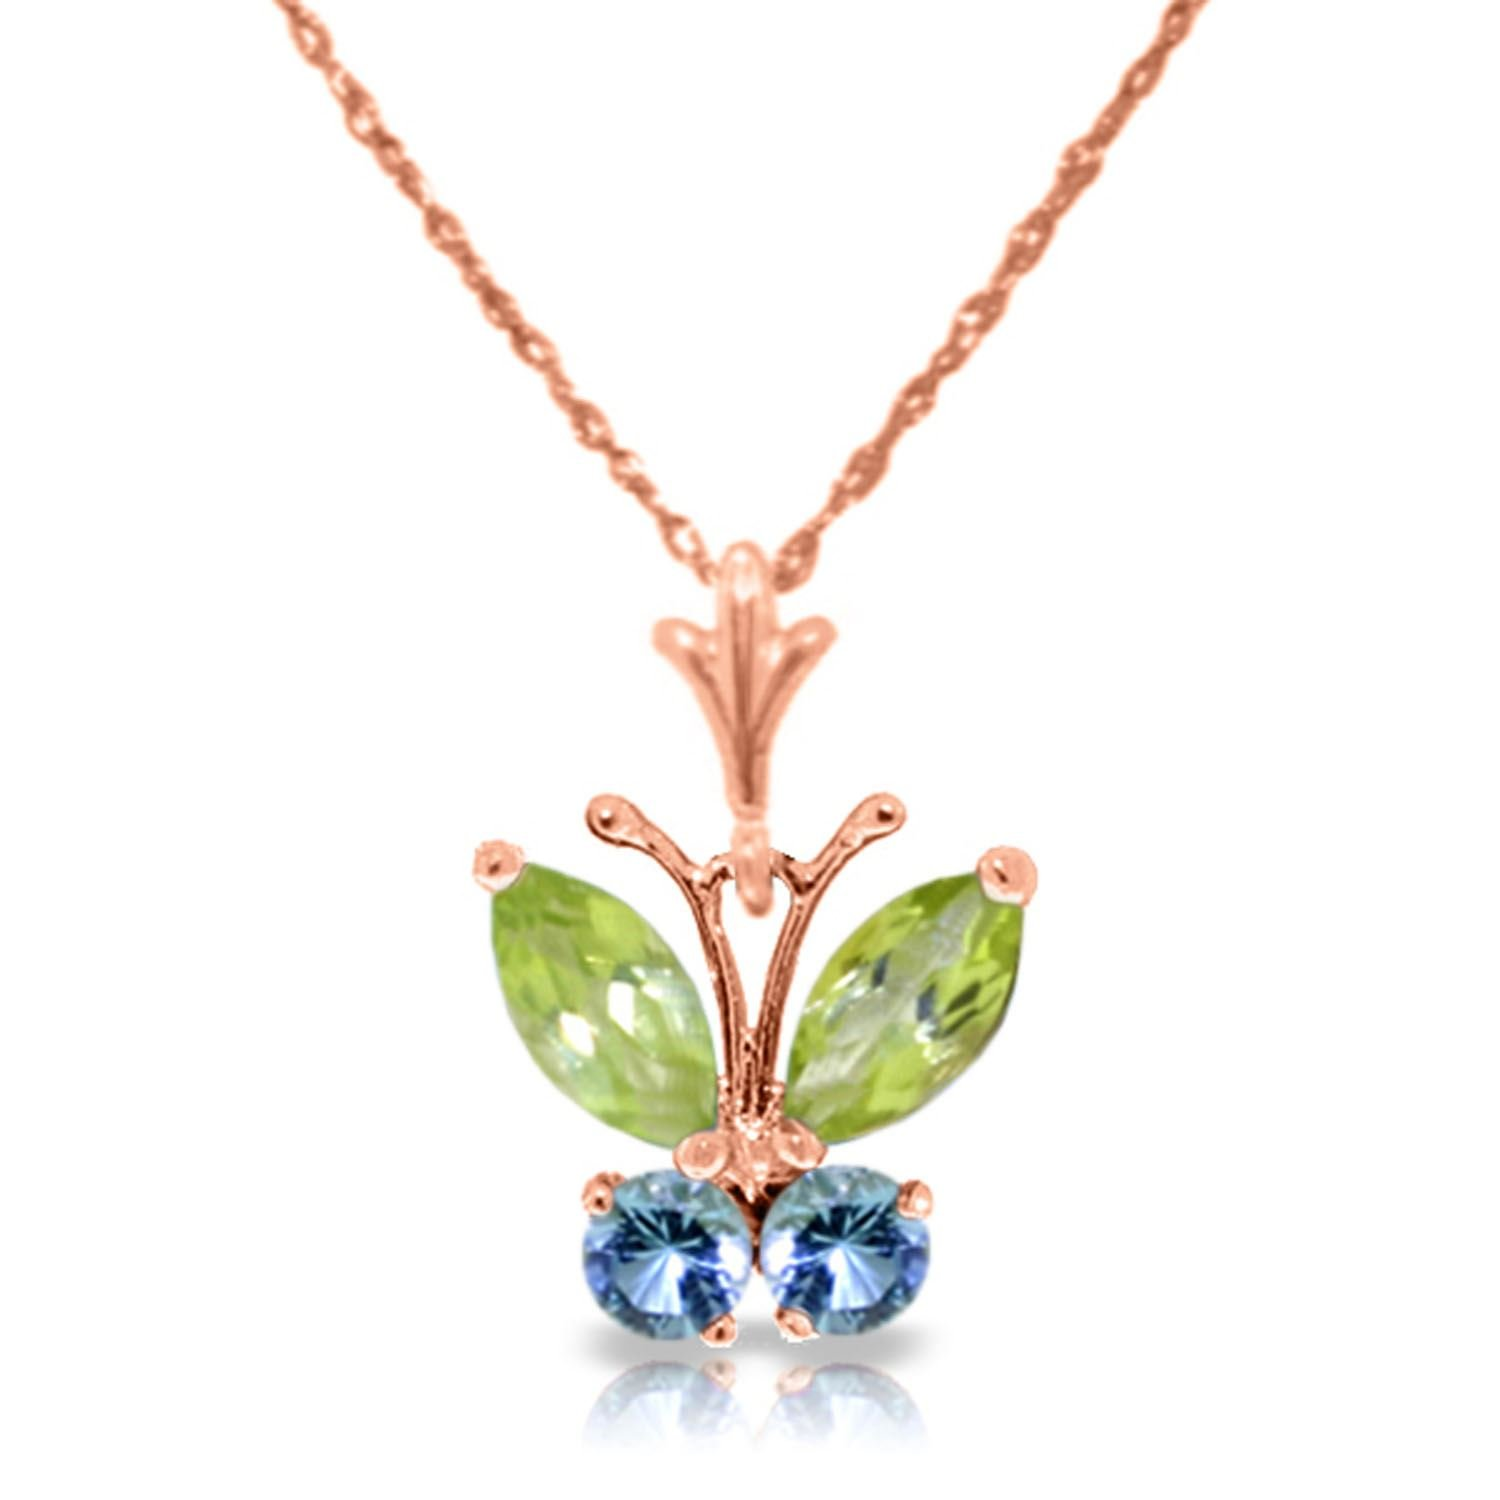 ALARRI 0.6 Carat 14K Solid Rose Gold Butterfly Necklace Blue Topaz Peridot with 18 Inch Chain Length